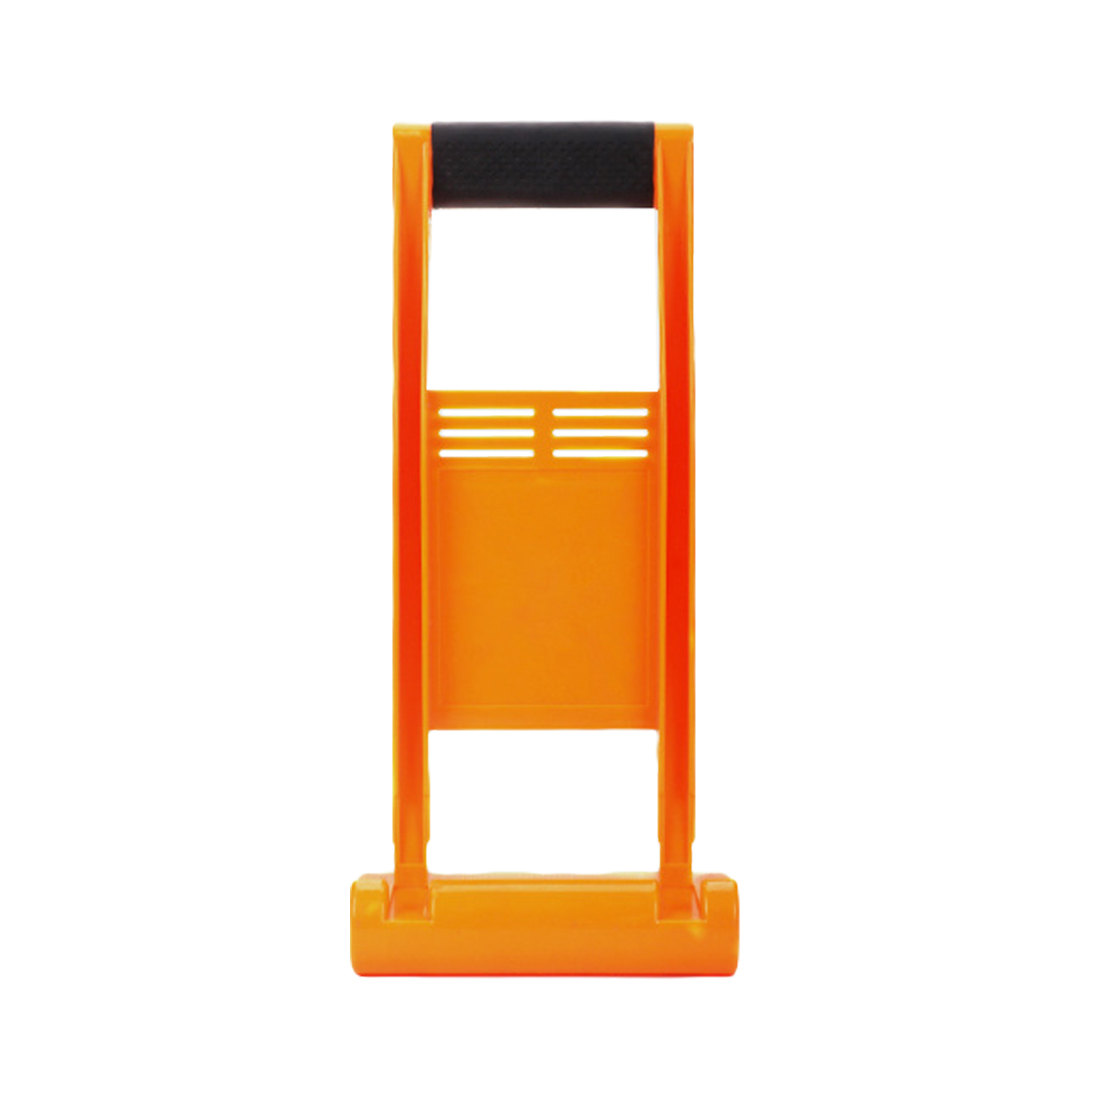 80KG Load Tool Panel Carrier Gripper Handle Carry Drywall Plywood Sheet ABS Load Conveyor  drywall tools